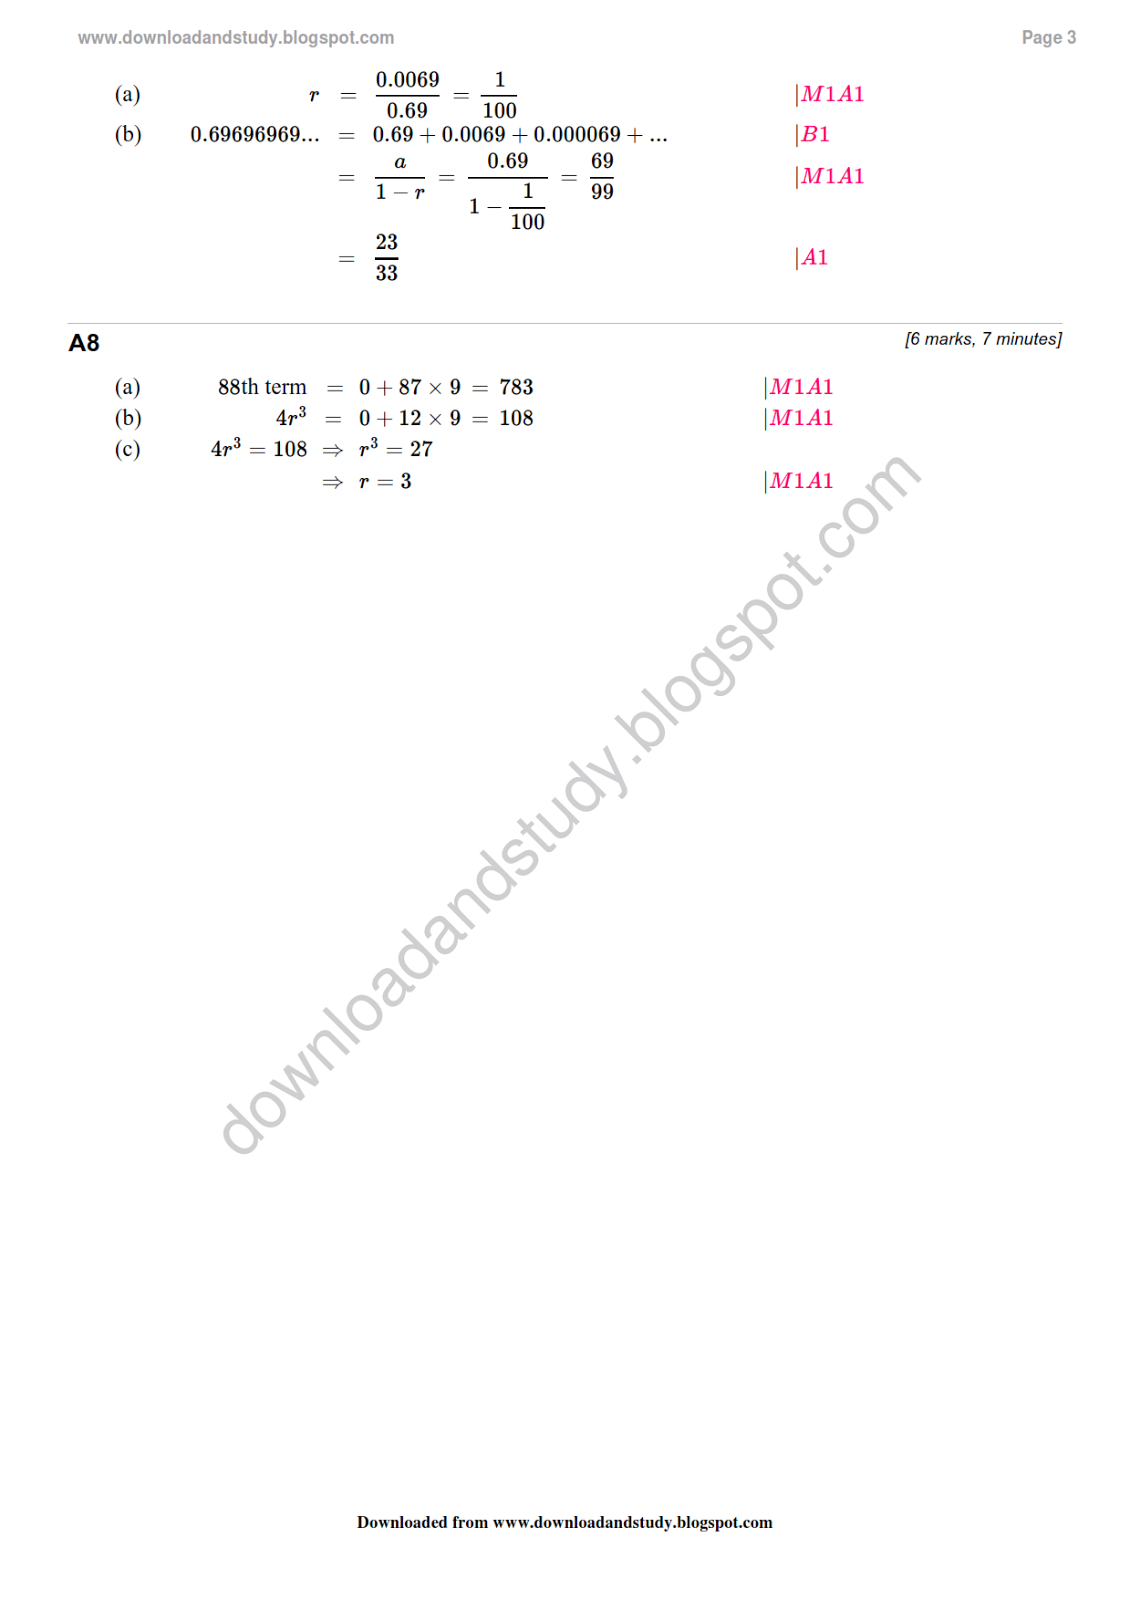 Worksheet Geometric Sequence Worksheet Mifirental Free – Arithmetic and Geometric Sequence Worksheet